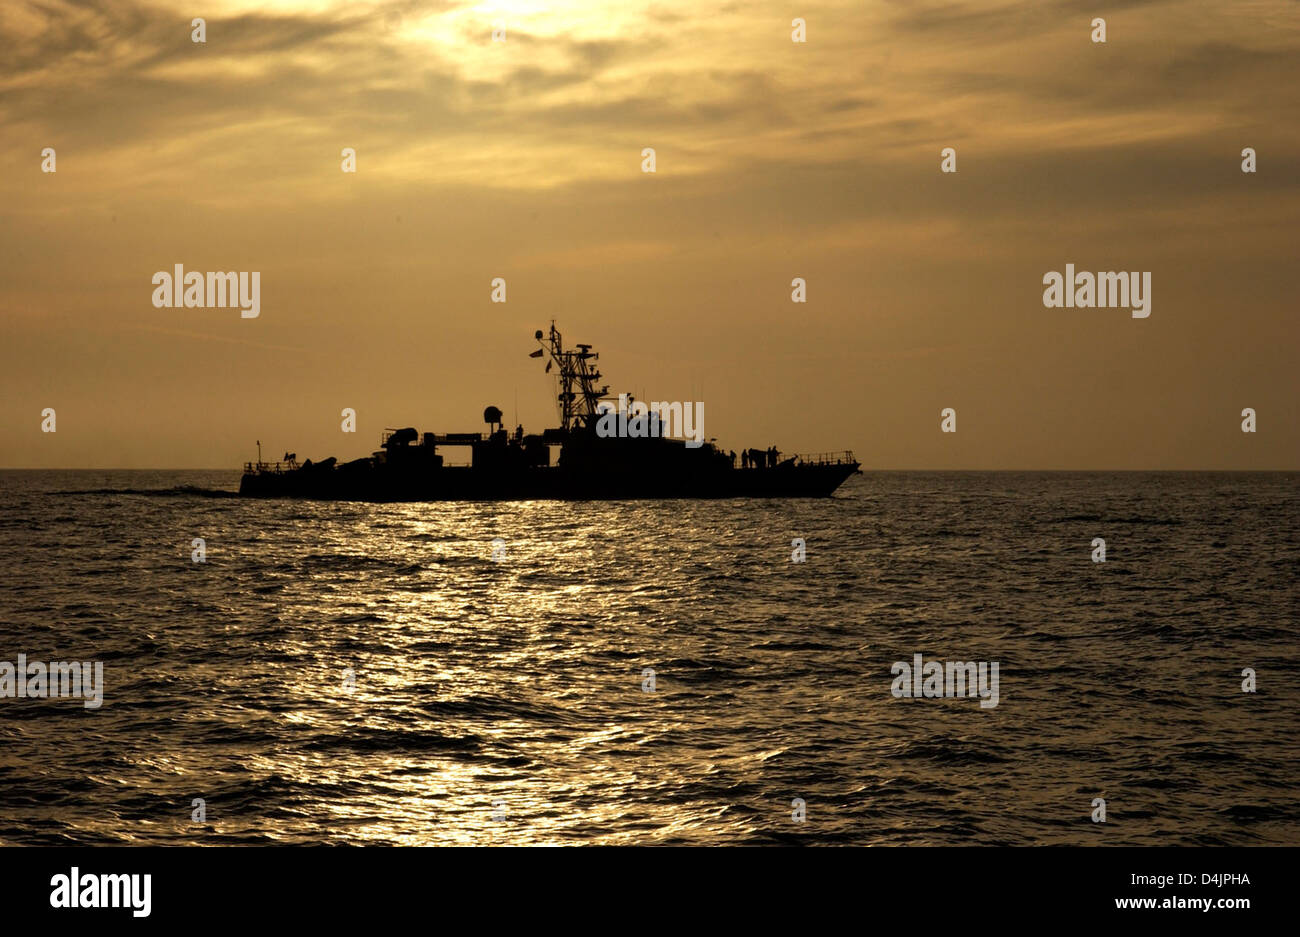 Coast Guard Cutter Shamal Stock Photo